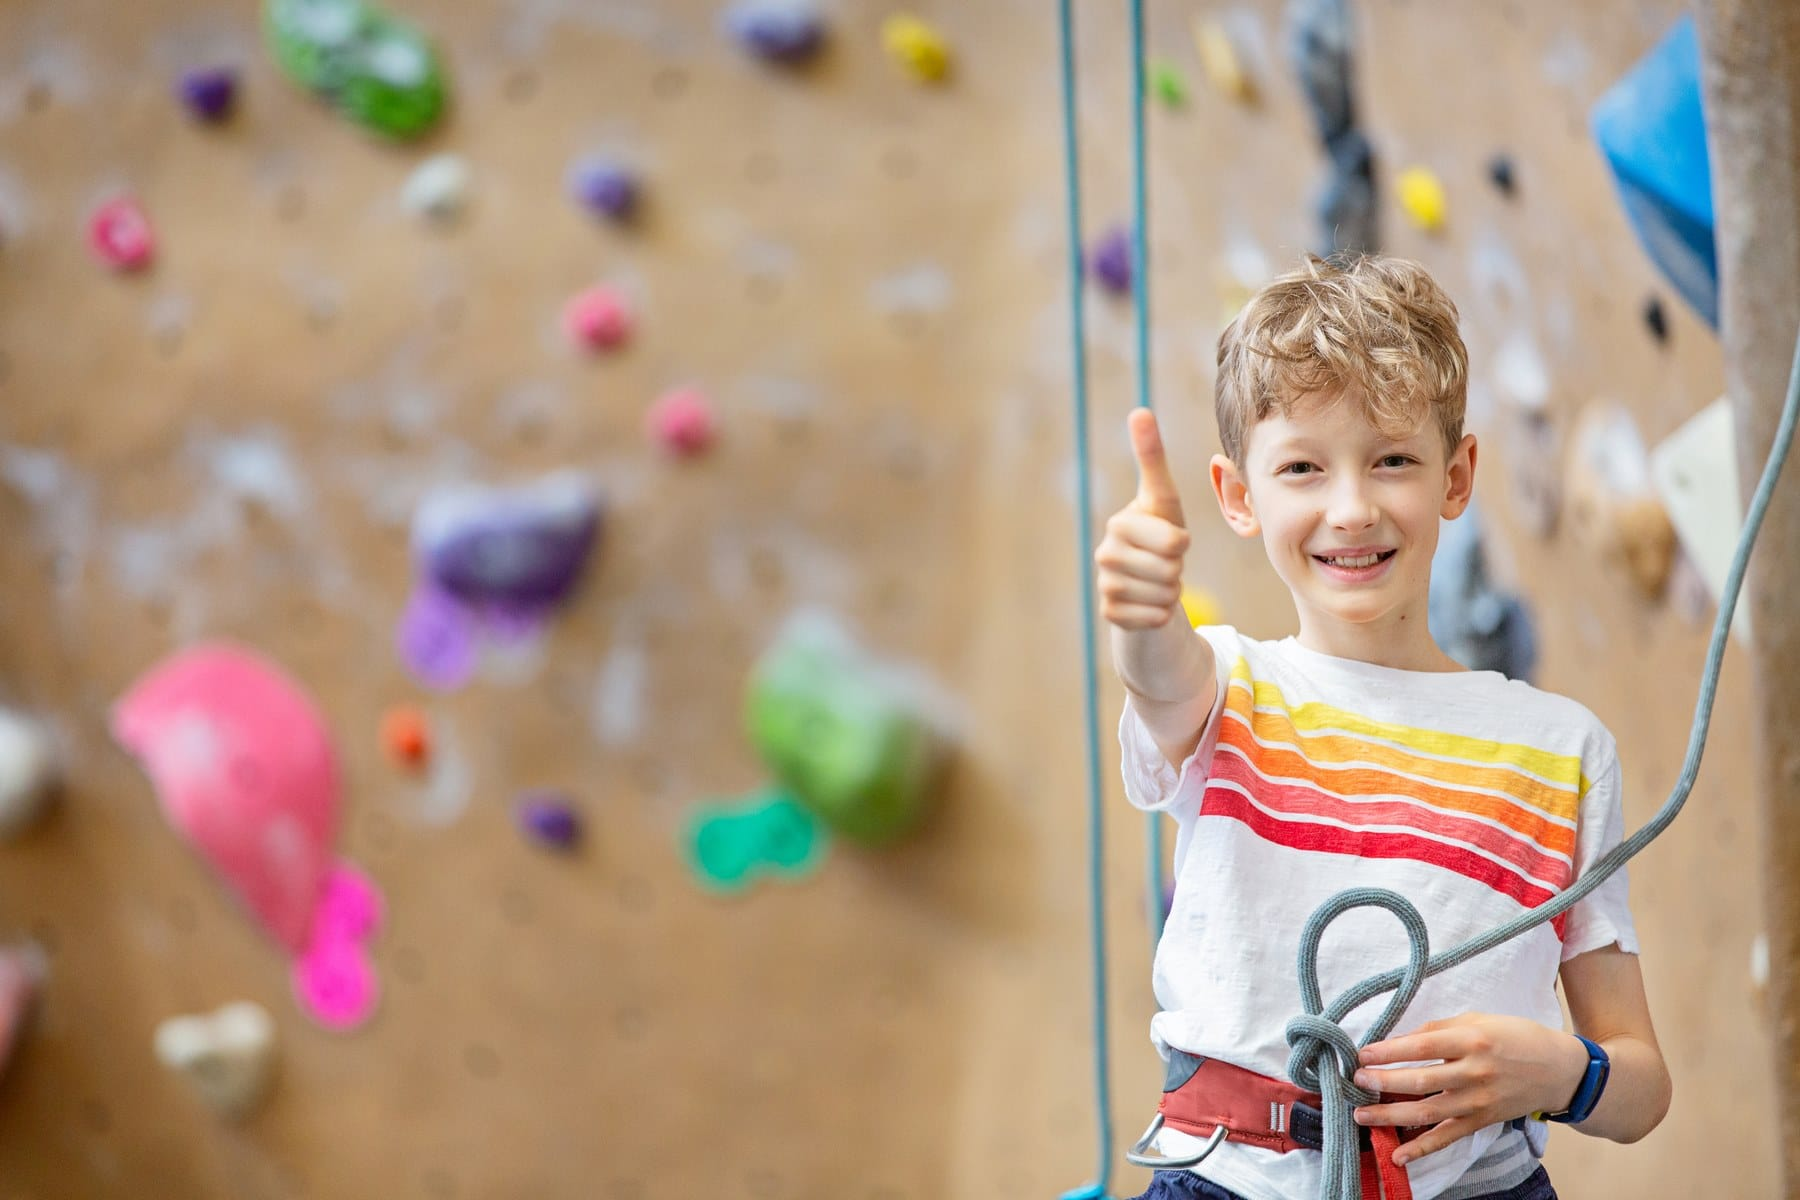 positive little boy in climbing harness ready for rock climbing in indoor gym, healthy lifestyle concept, copy space on left